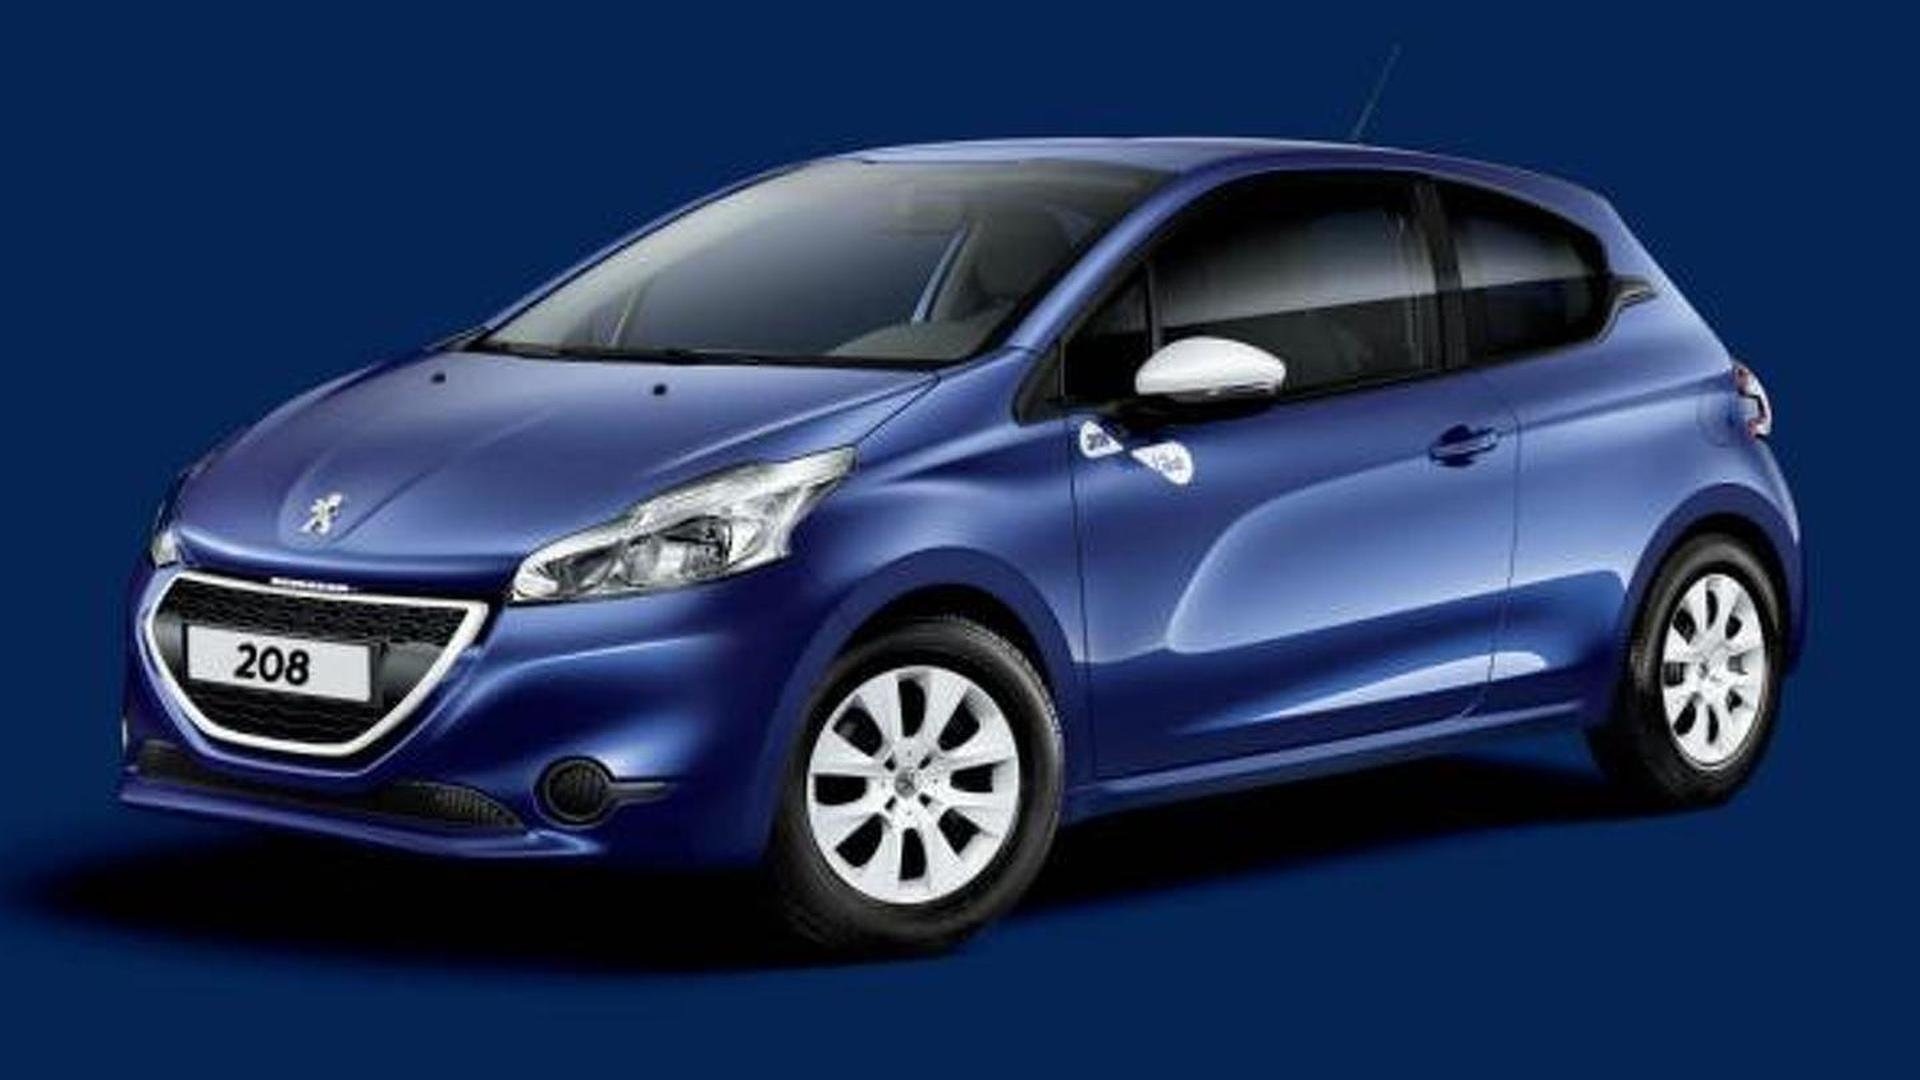 peugeot 208 like special edition announced for france. Black Bedroom Furniture Sets. Home Design Ideas